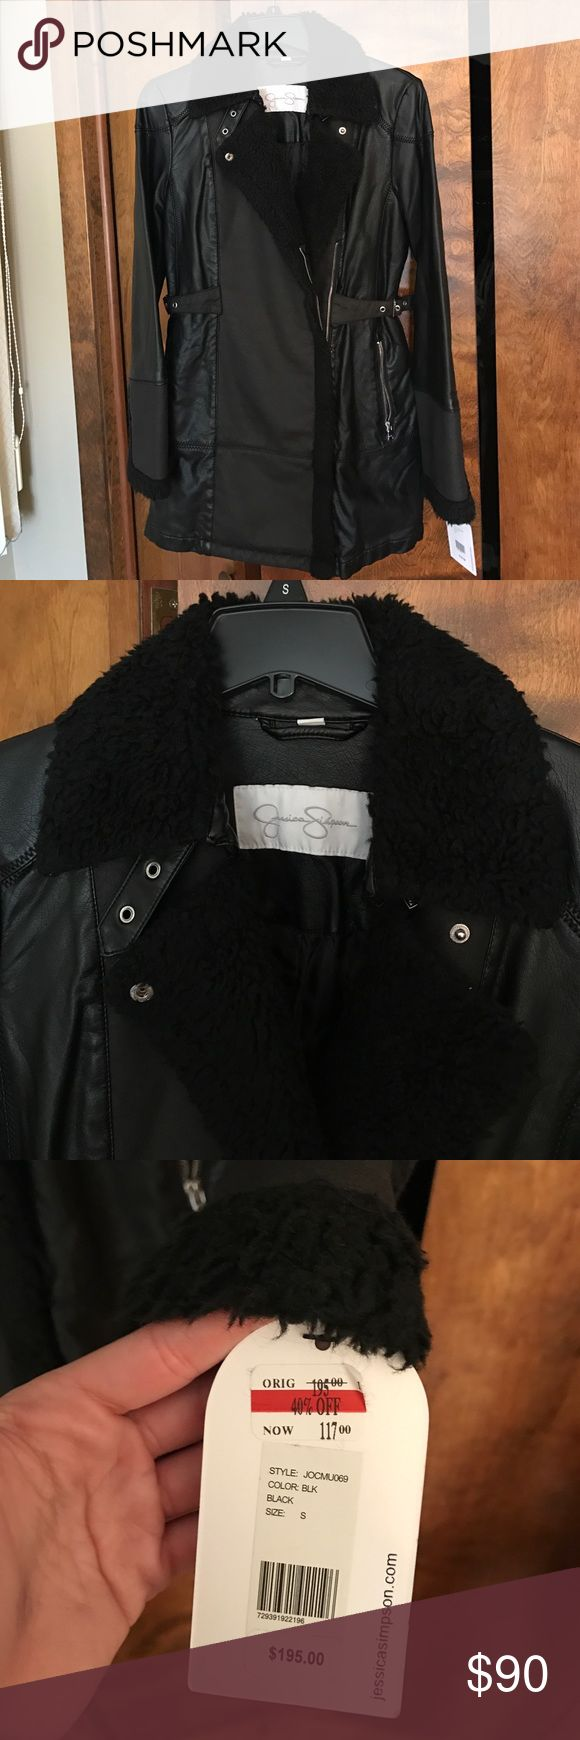 🆕 Jessica Simpson Coat Leather Jessica Simpson jacket, new with tags, size small, comes to a little above knee length (see pic). Make an offer! Jessica Simpson Jackets & Coats